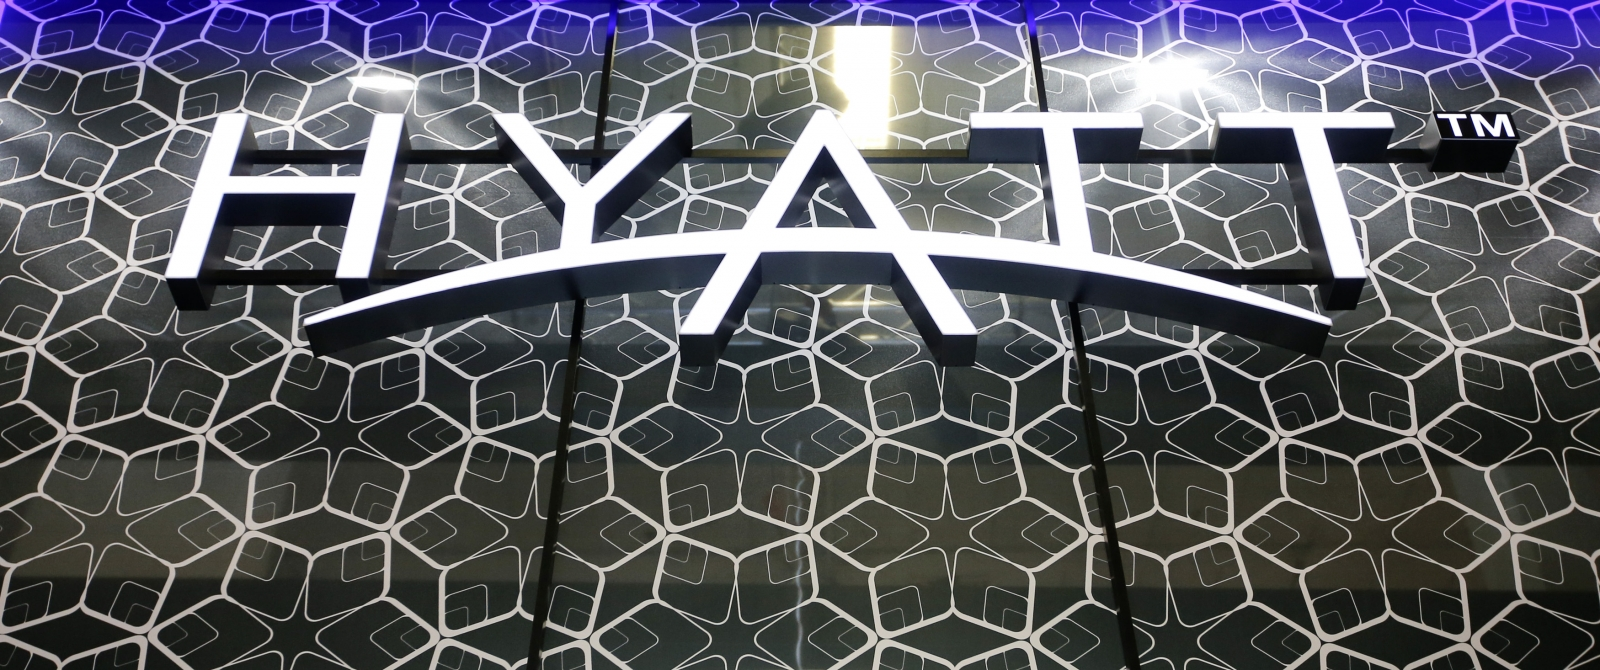 Hackers hit Hyatt, Marriott and other hotels with malware, customer